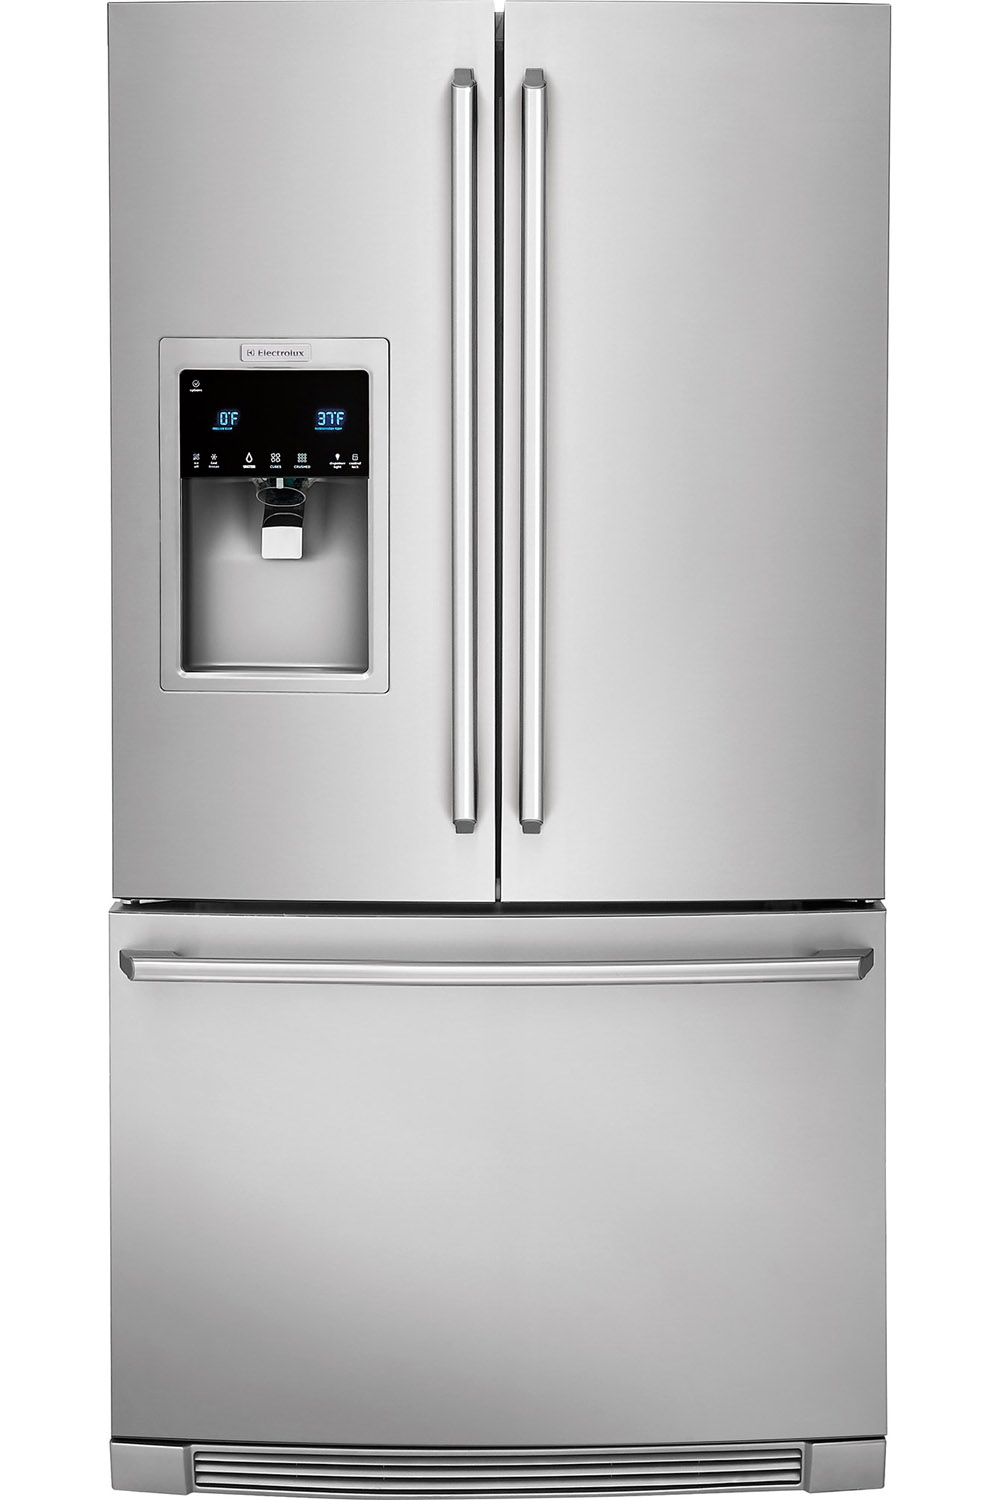 Electrolux Stainless French Door Refrigerator - EI23BC35S